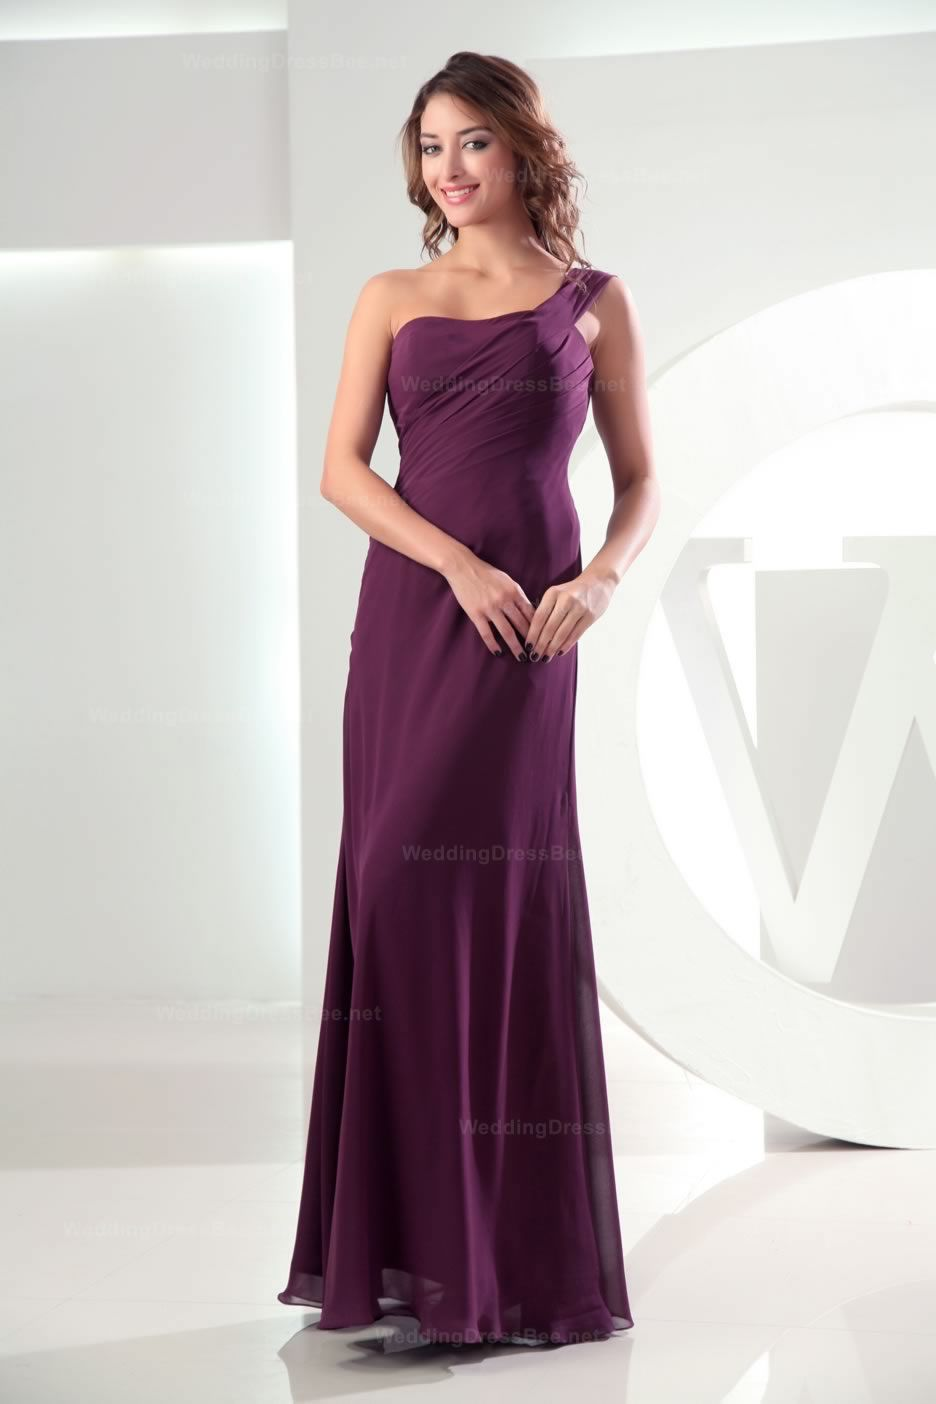 Oneshoulder ruched top floor length chiffon dress party dresses